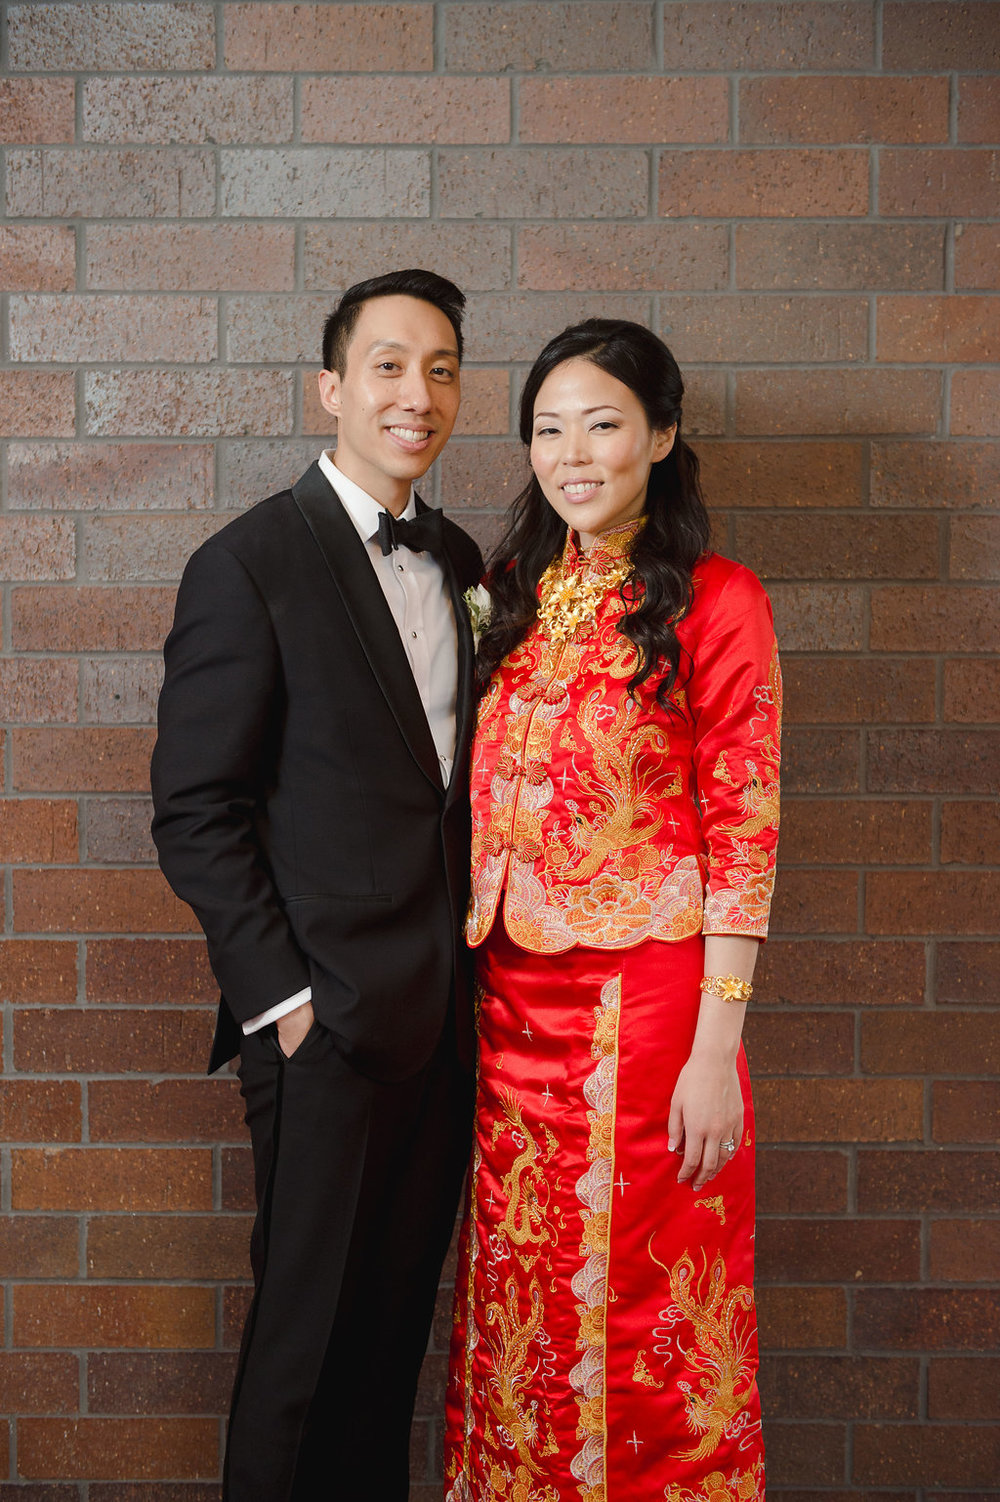 The bride changed into stunning red and gold traditional Chinese garb for the tea ceremony.